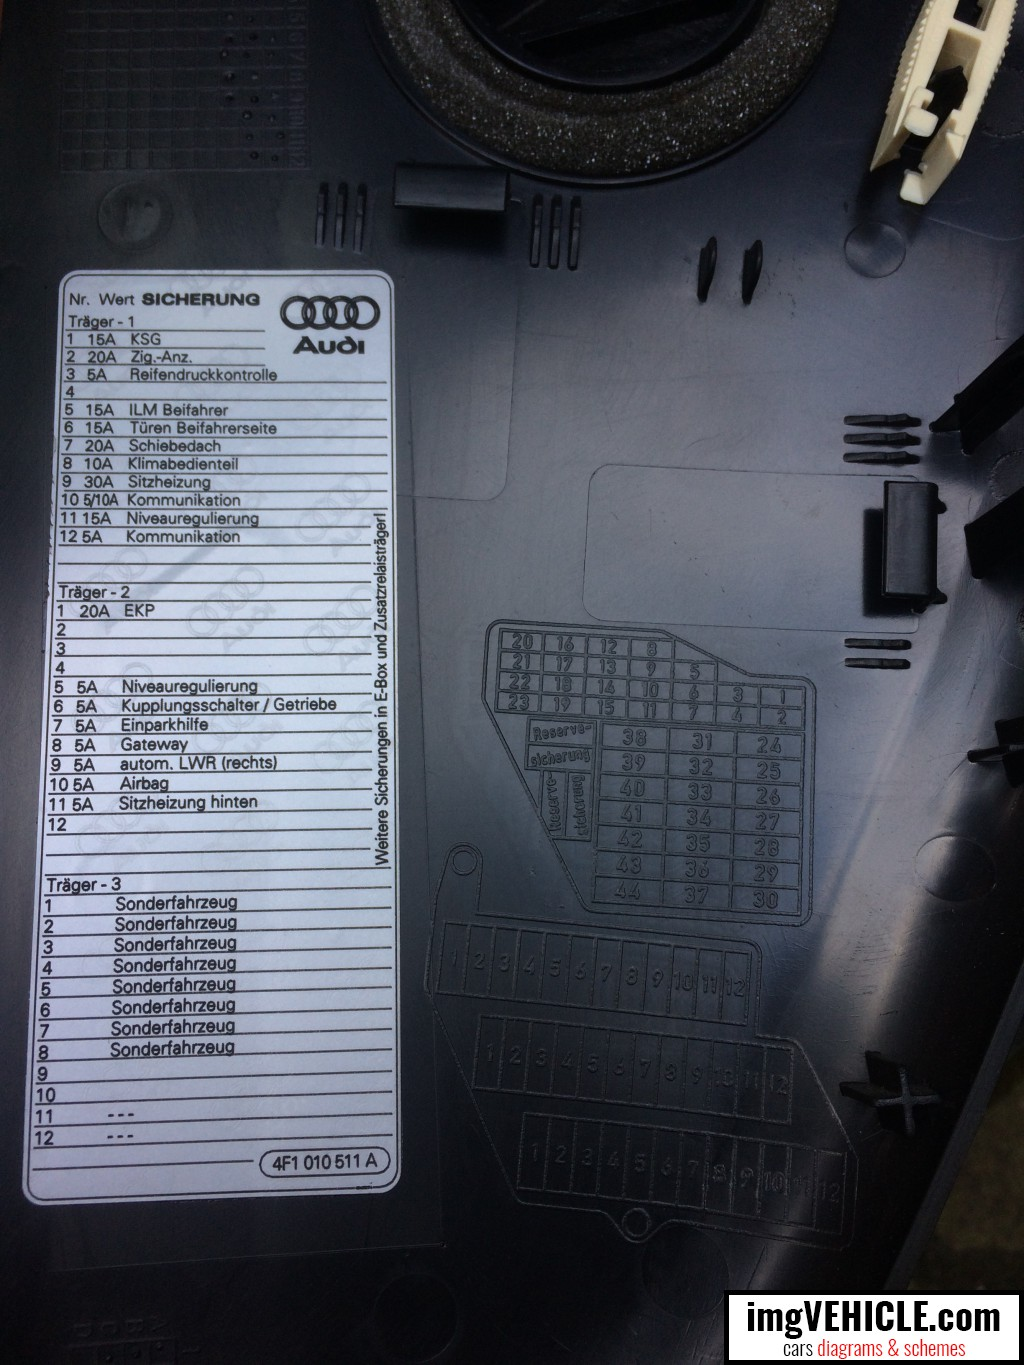 Audi A6 C6 Fuse Box Diagrams Schemes 2005 Fuel Pump Relay Location Dash Panel Diagram 2